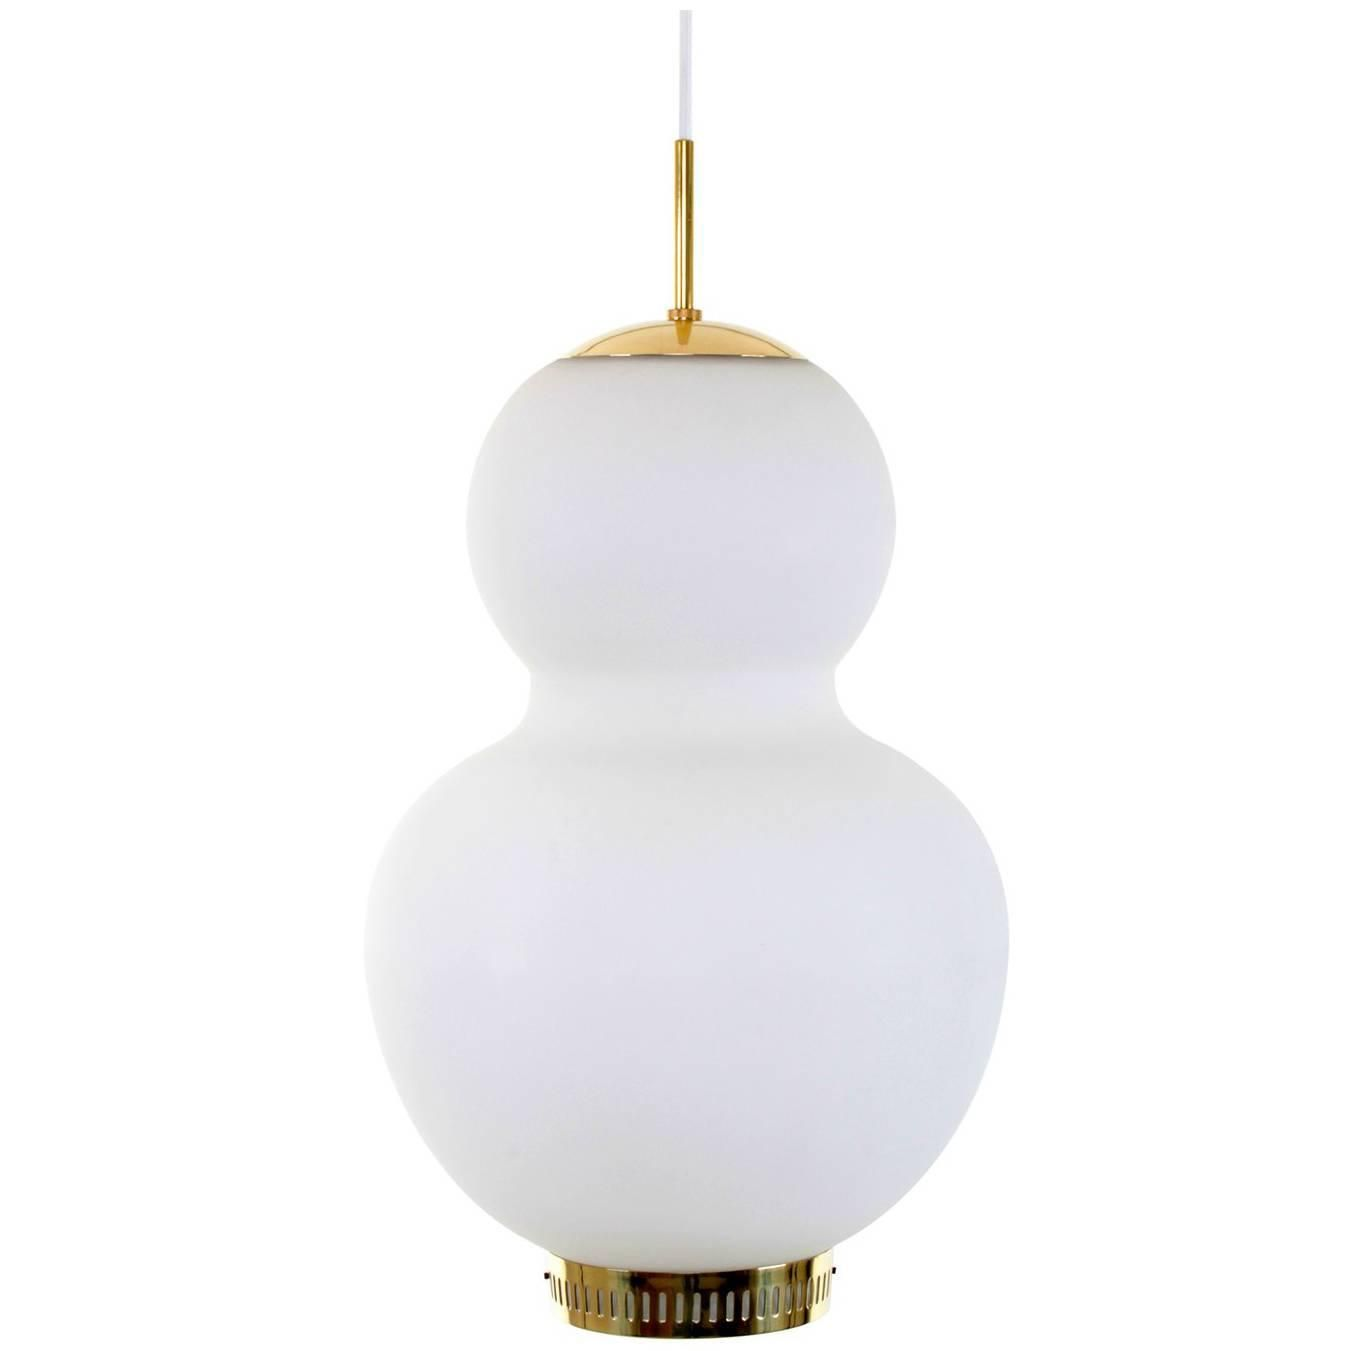 Peanut By Bent Karlby 1946 Lyfa Very Attractive Large Opal And Brass Pendant Vintage Chandelier Glass Ceiling Lights Chandelier Pendant Lights